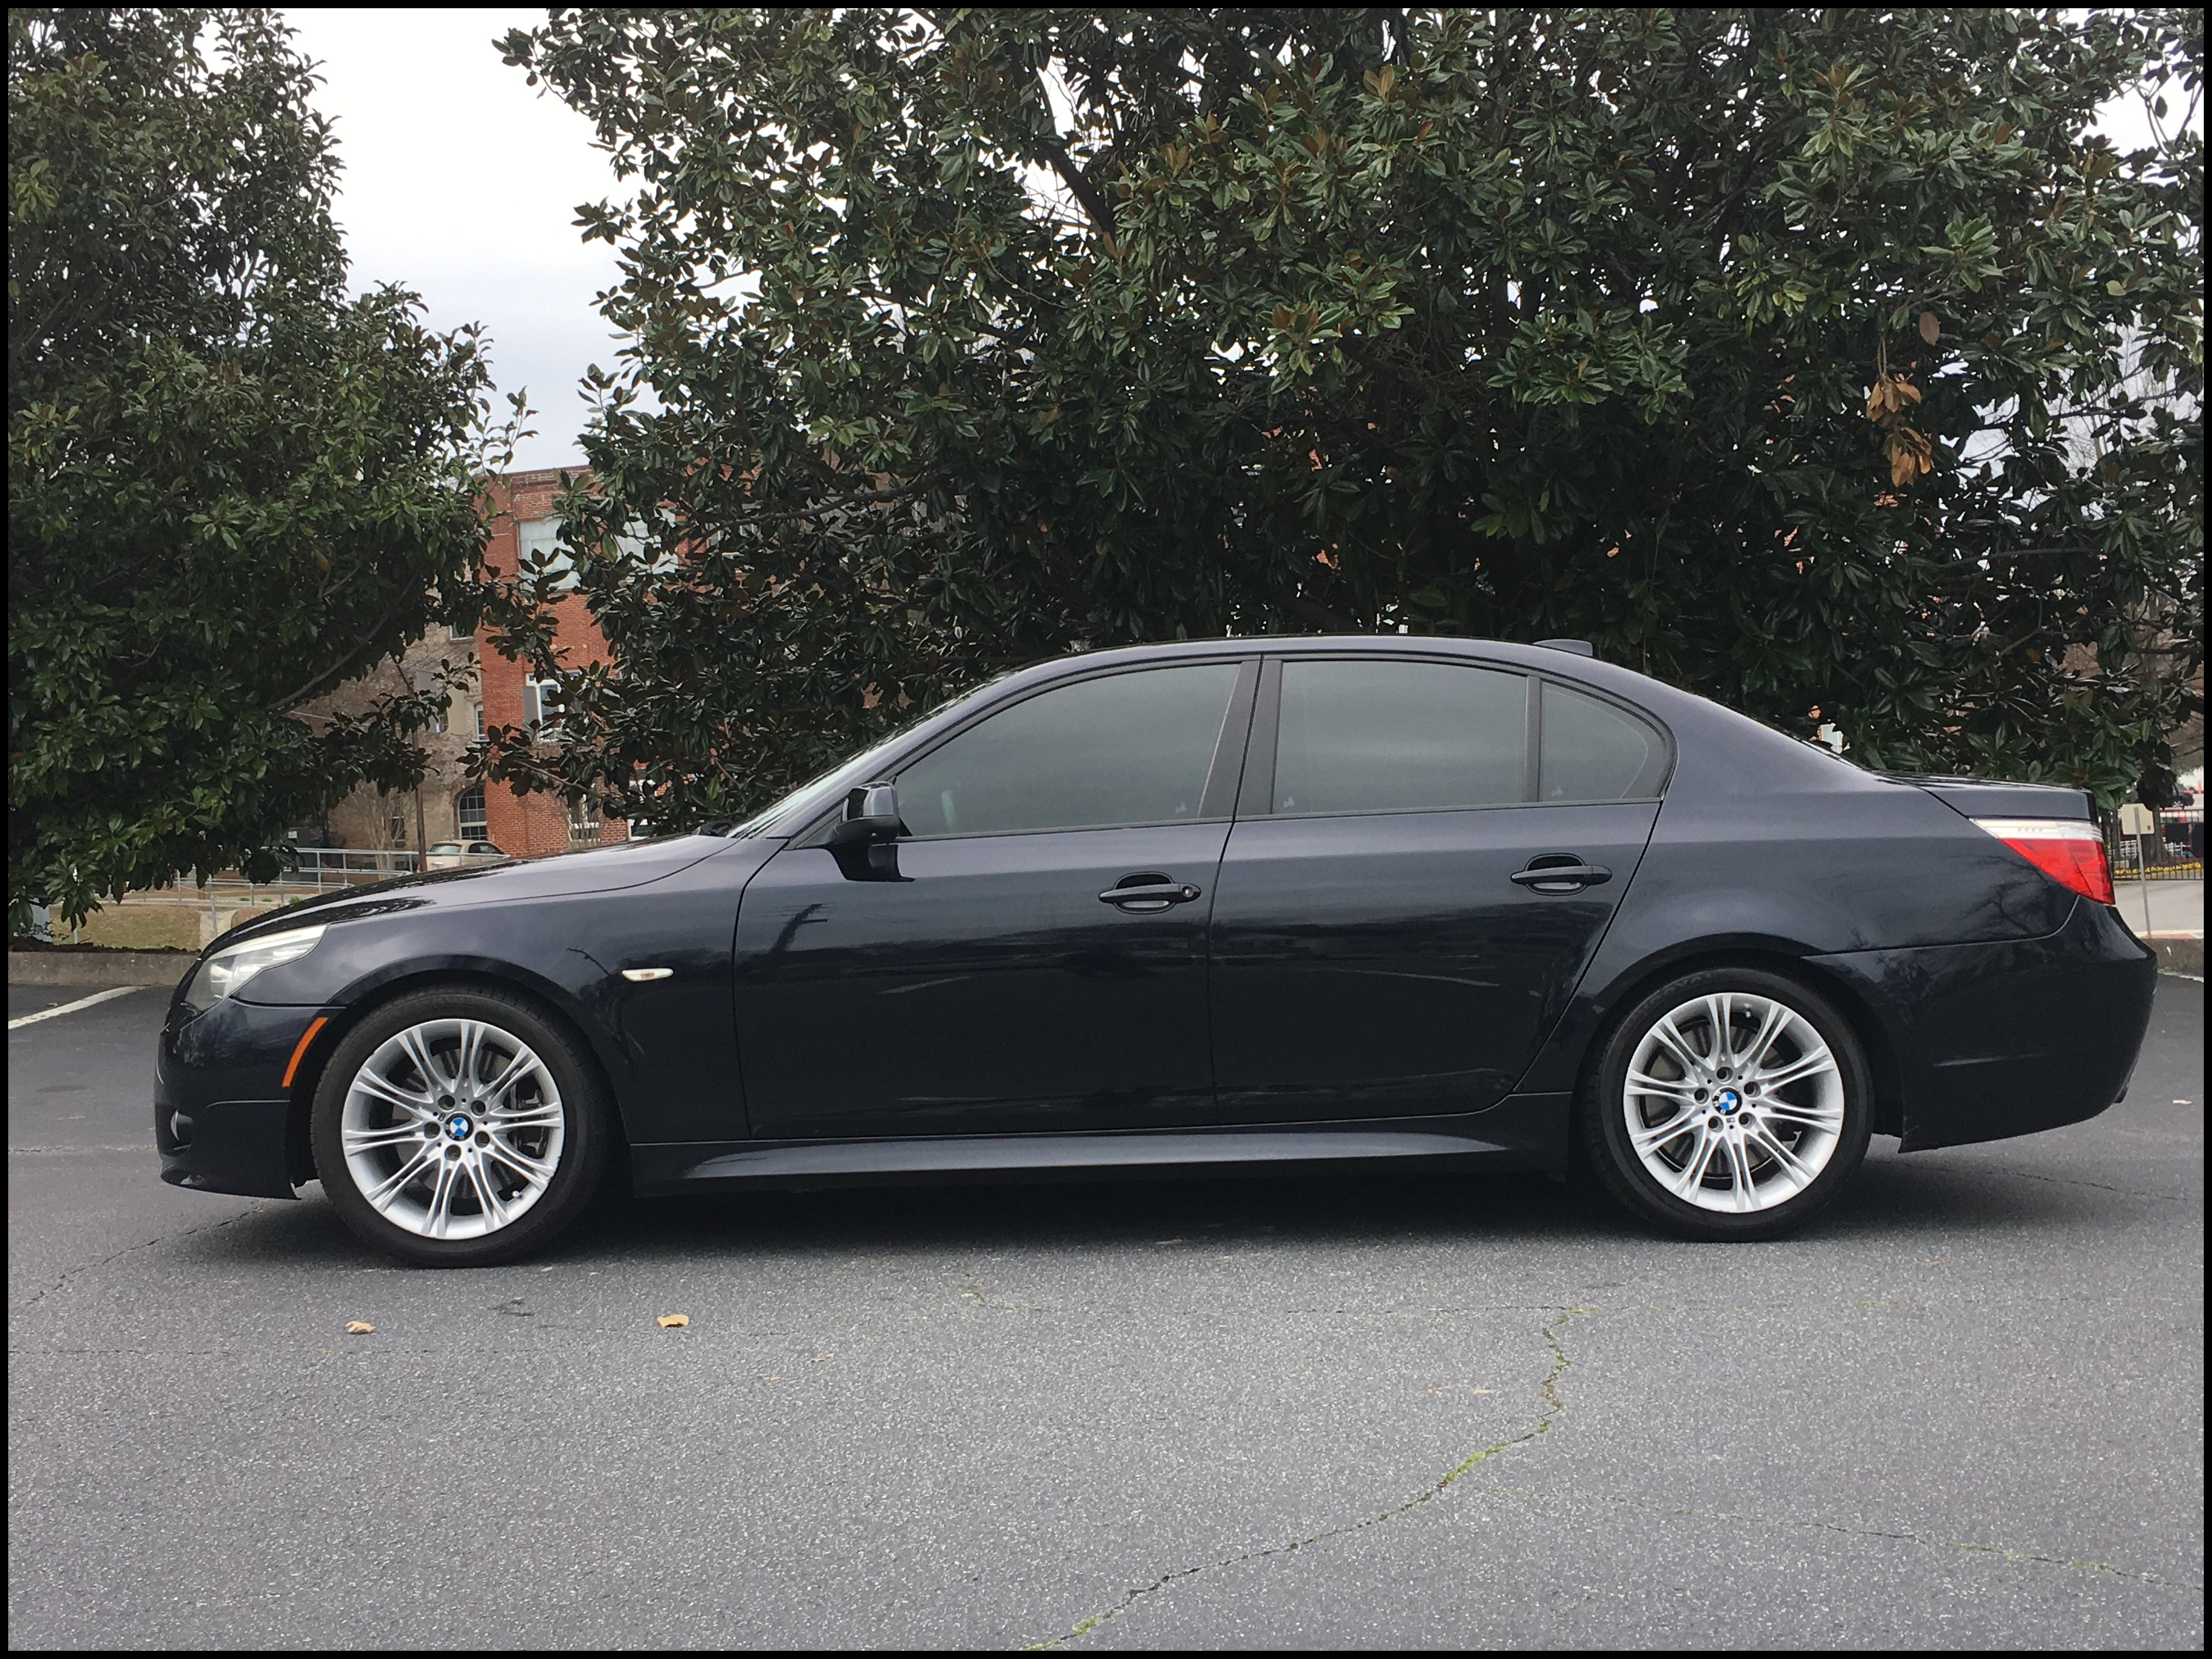 2010 Bmw 535i Sport Package Specs Lovely 2010 Bmw 535i Sedan with M Sport Package